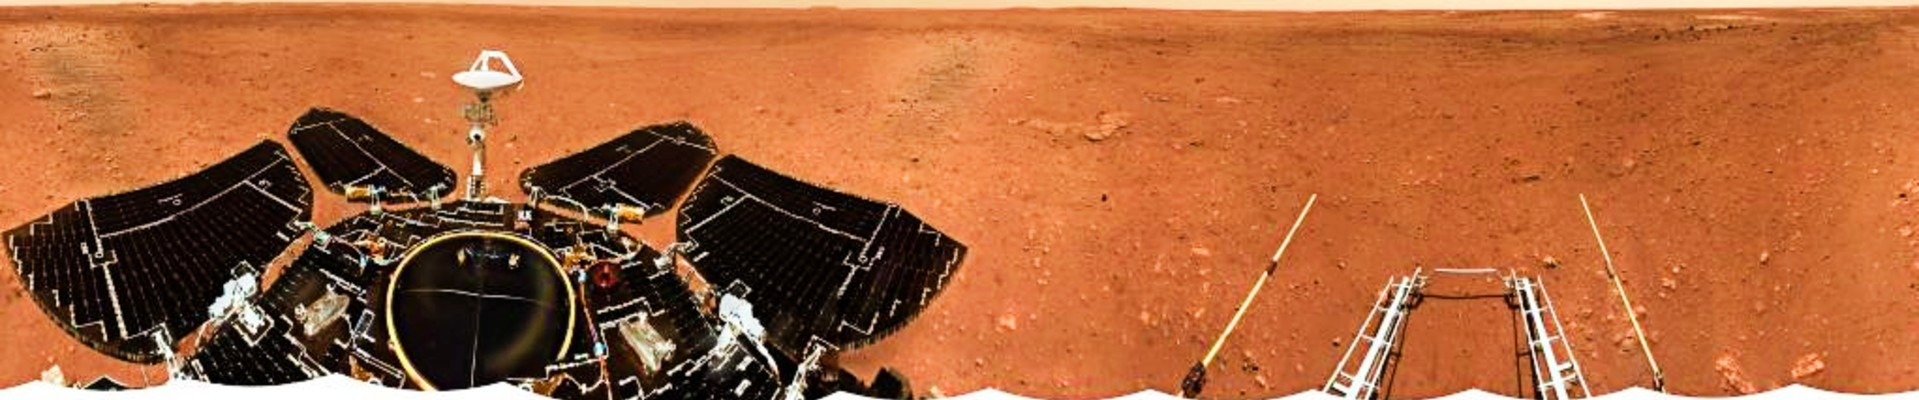 Photo released on June 11, 2021 by the China National Space Administration (CNSA) shows the landing site panorama. PHOTO: XINHUA